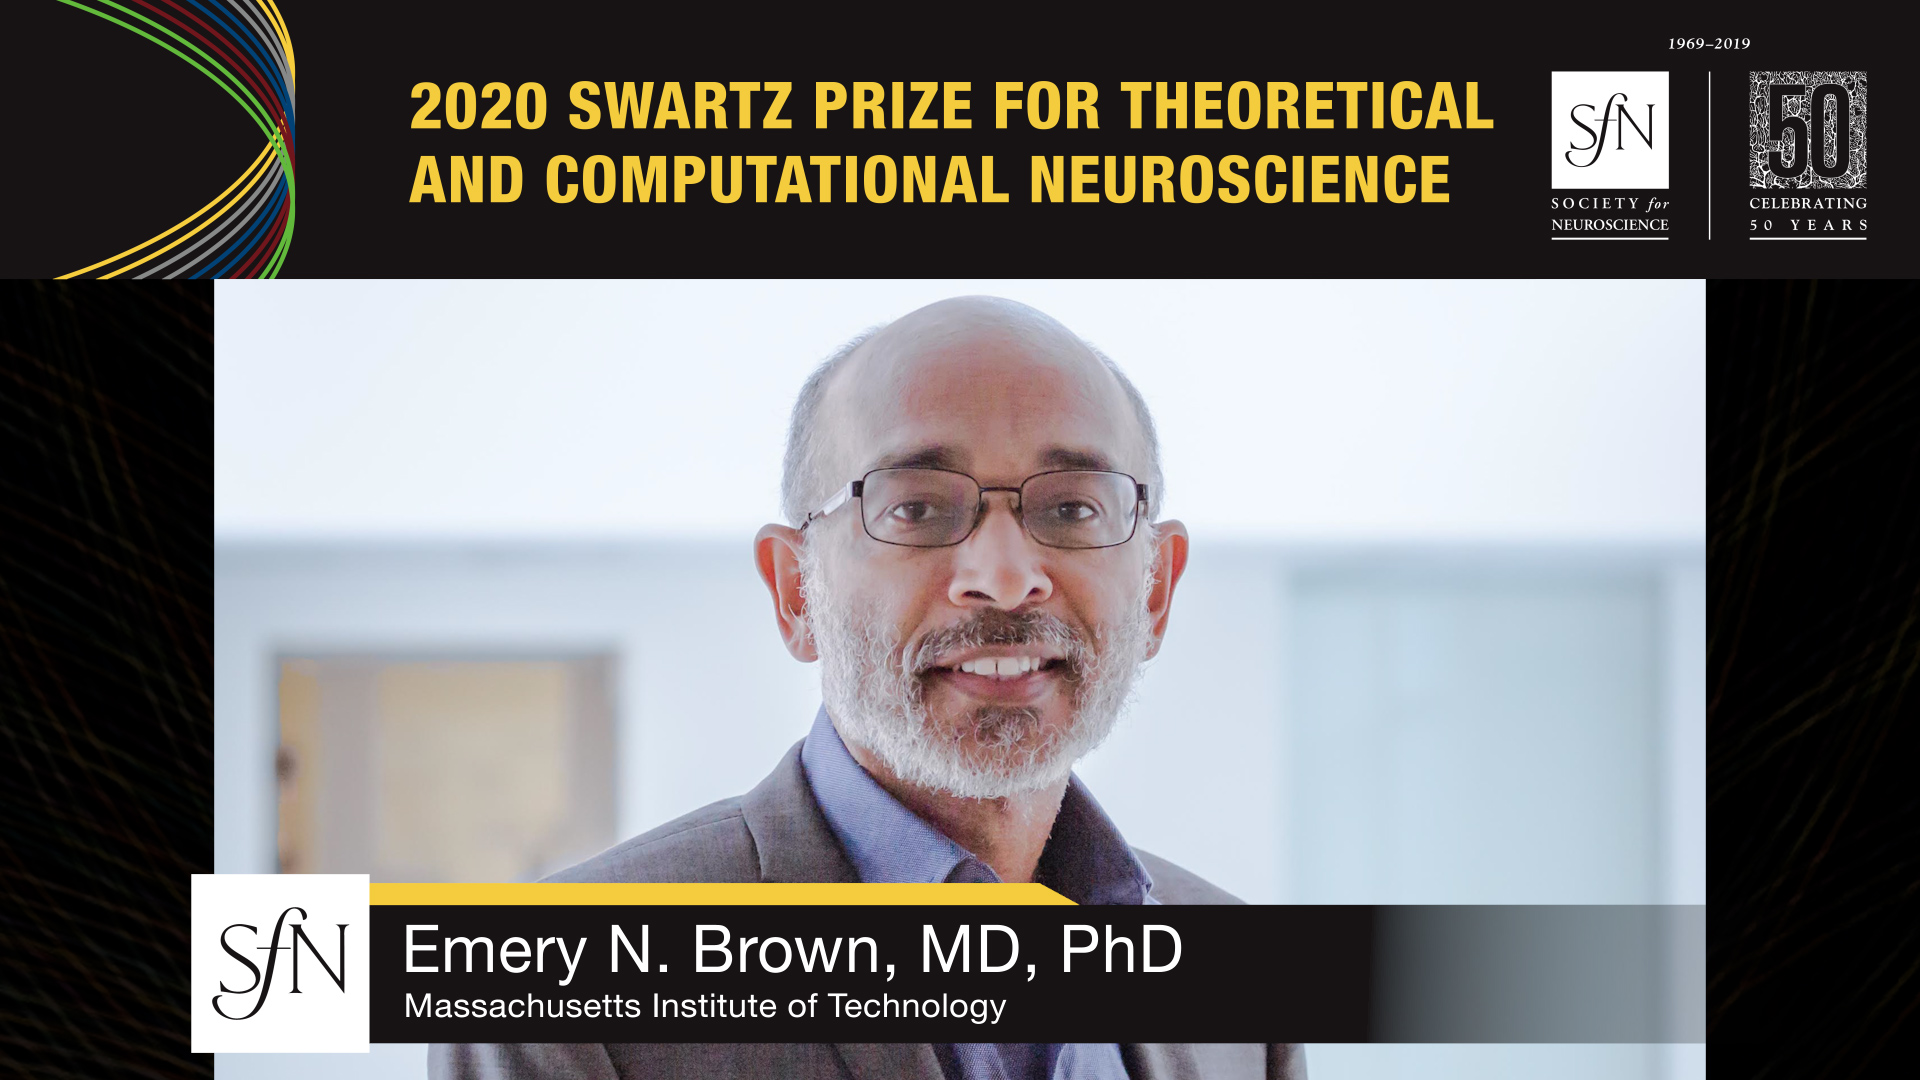 2020 Swartz Prize for Theoretical and Computational Neuroscience award winner graphic, image of Emery N Brown, MD PhD Massachusetts Institute of Technology